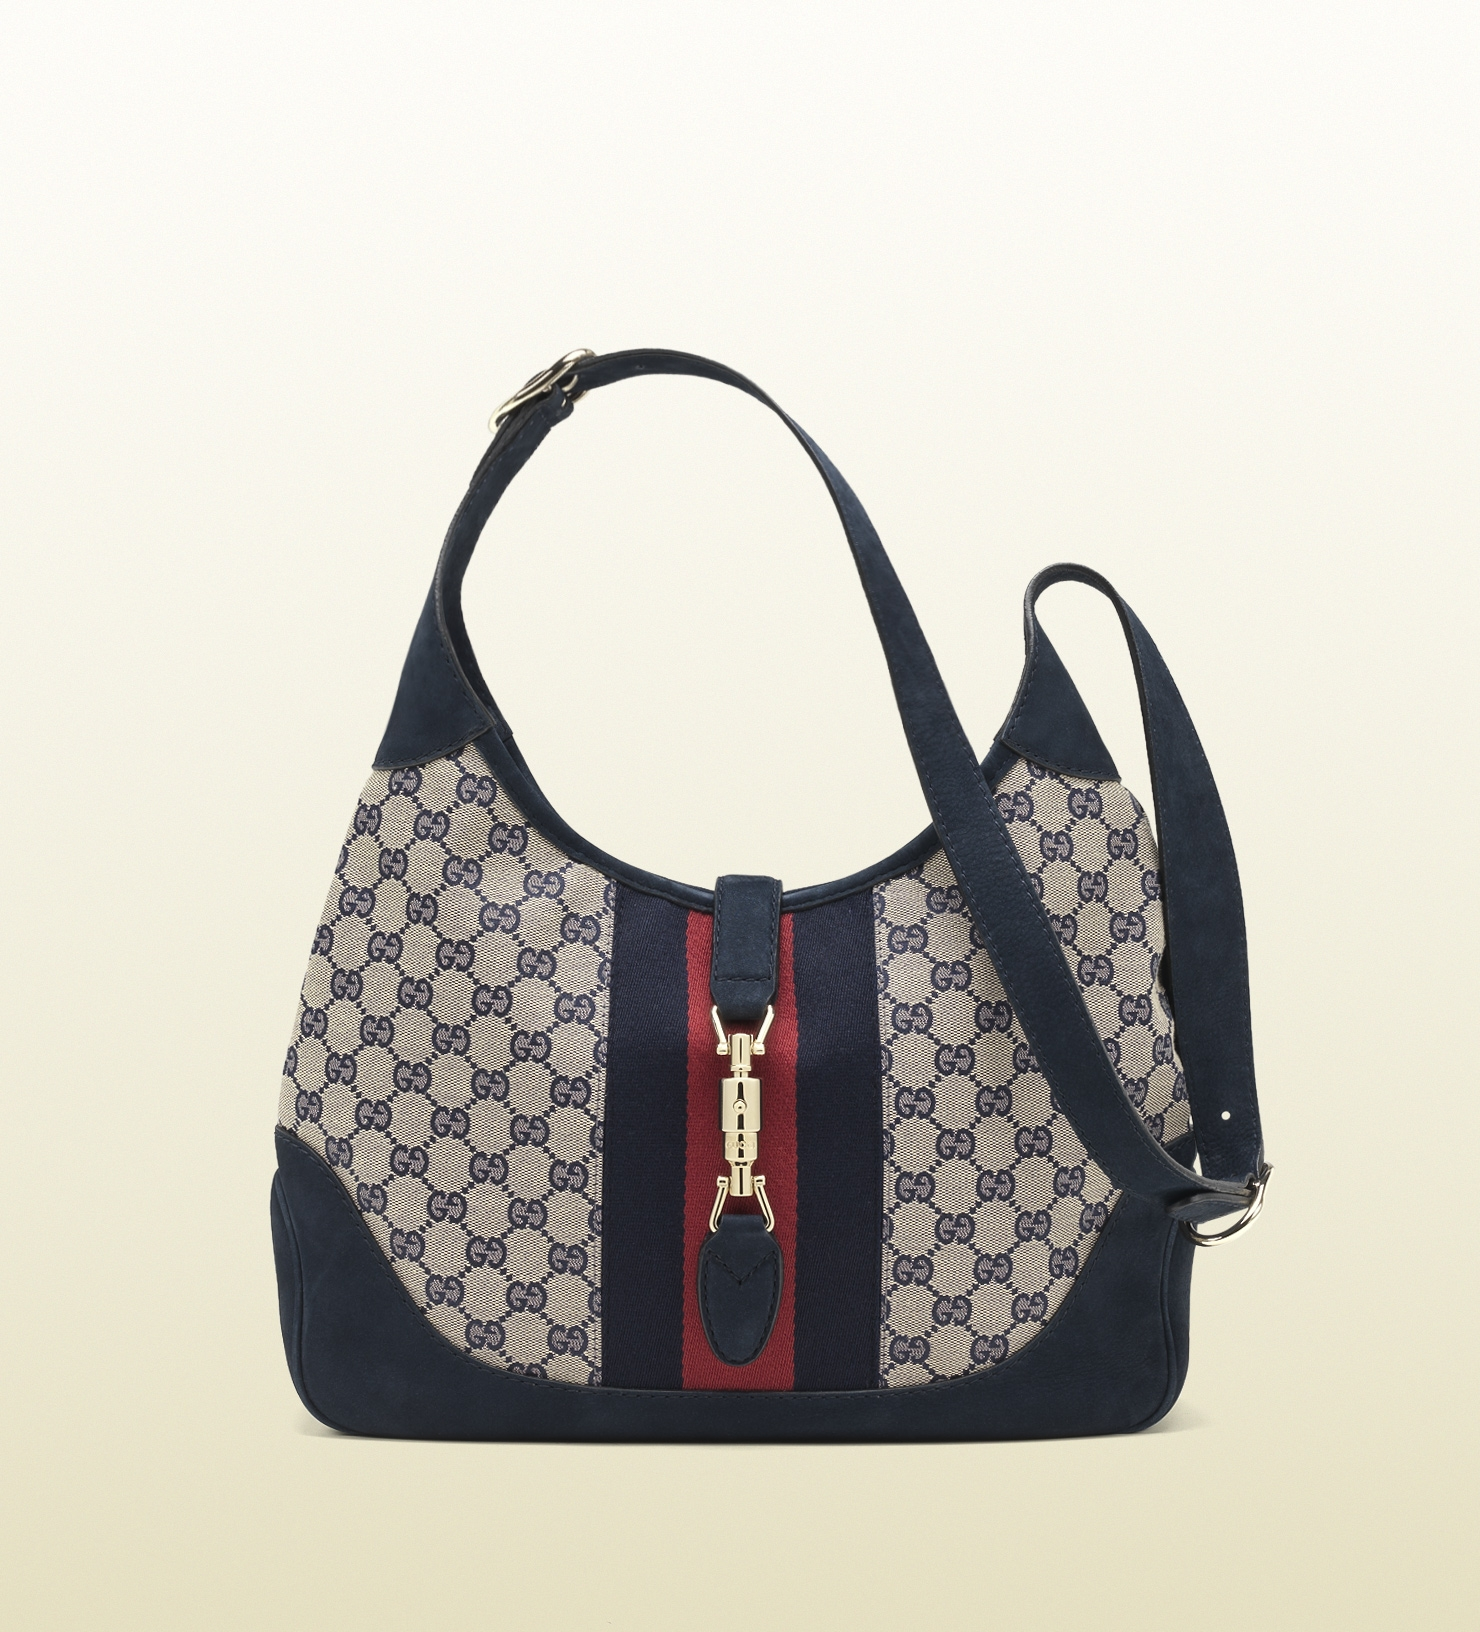 Jackie Original Gg Canvas Shoulder Bag Price 65